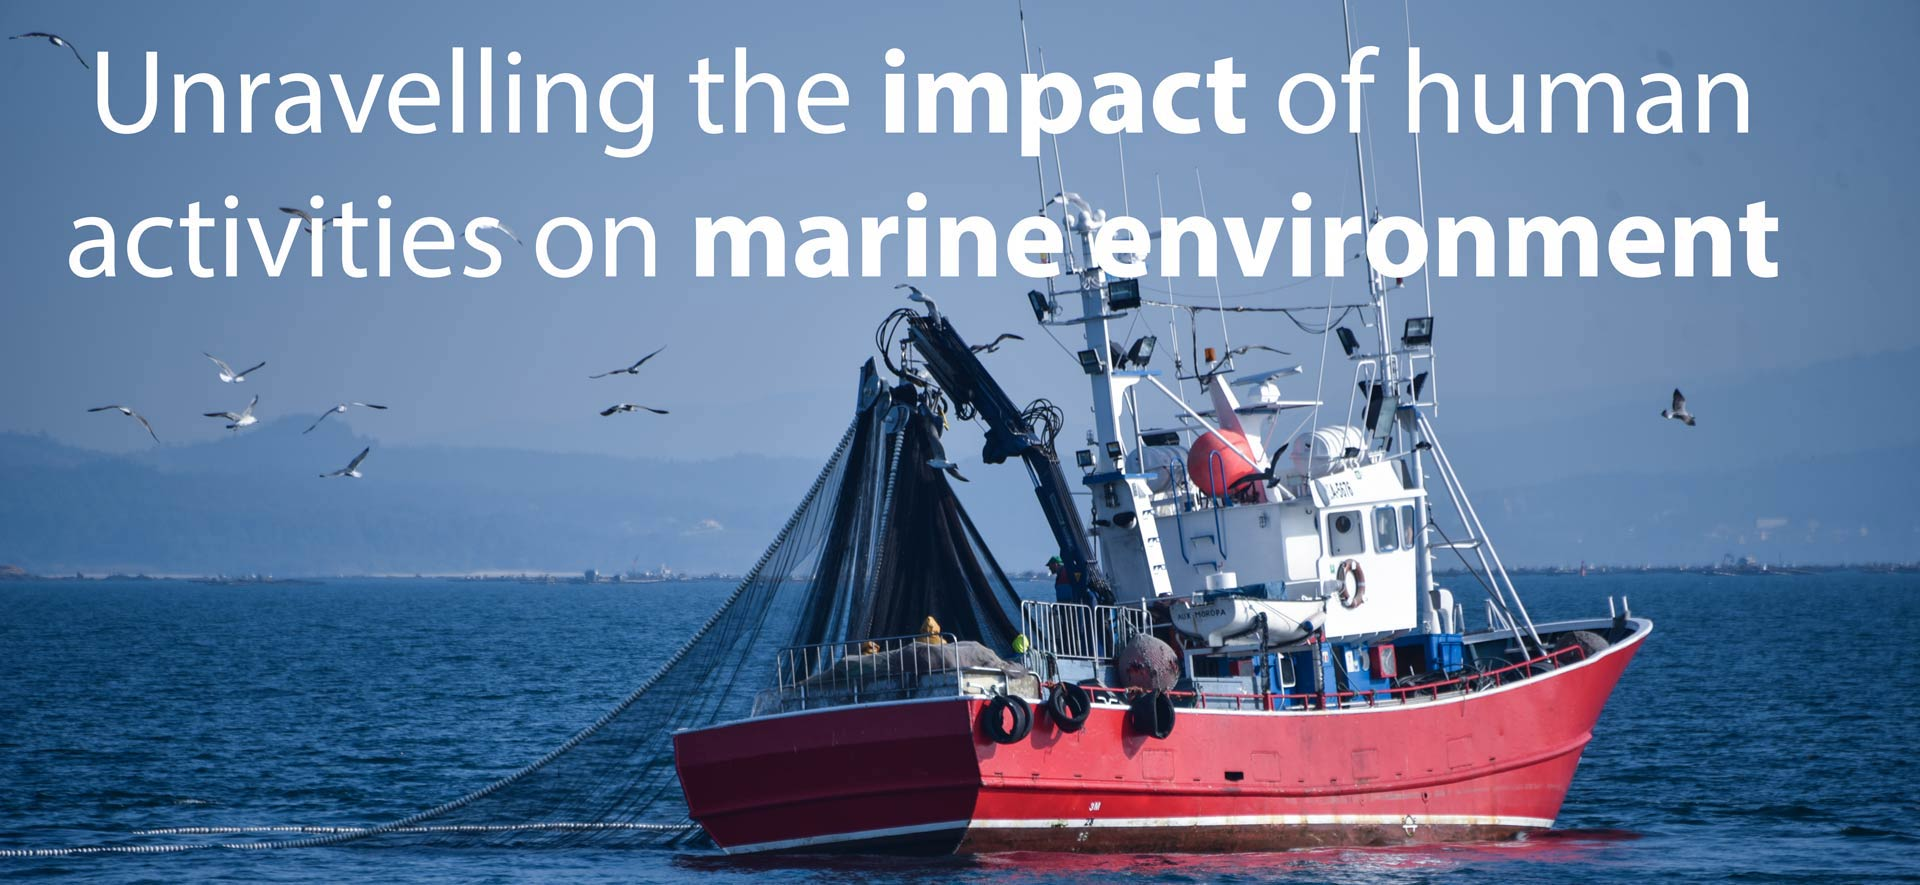 Impact of human activities on marine environment